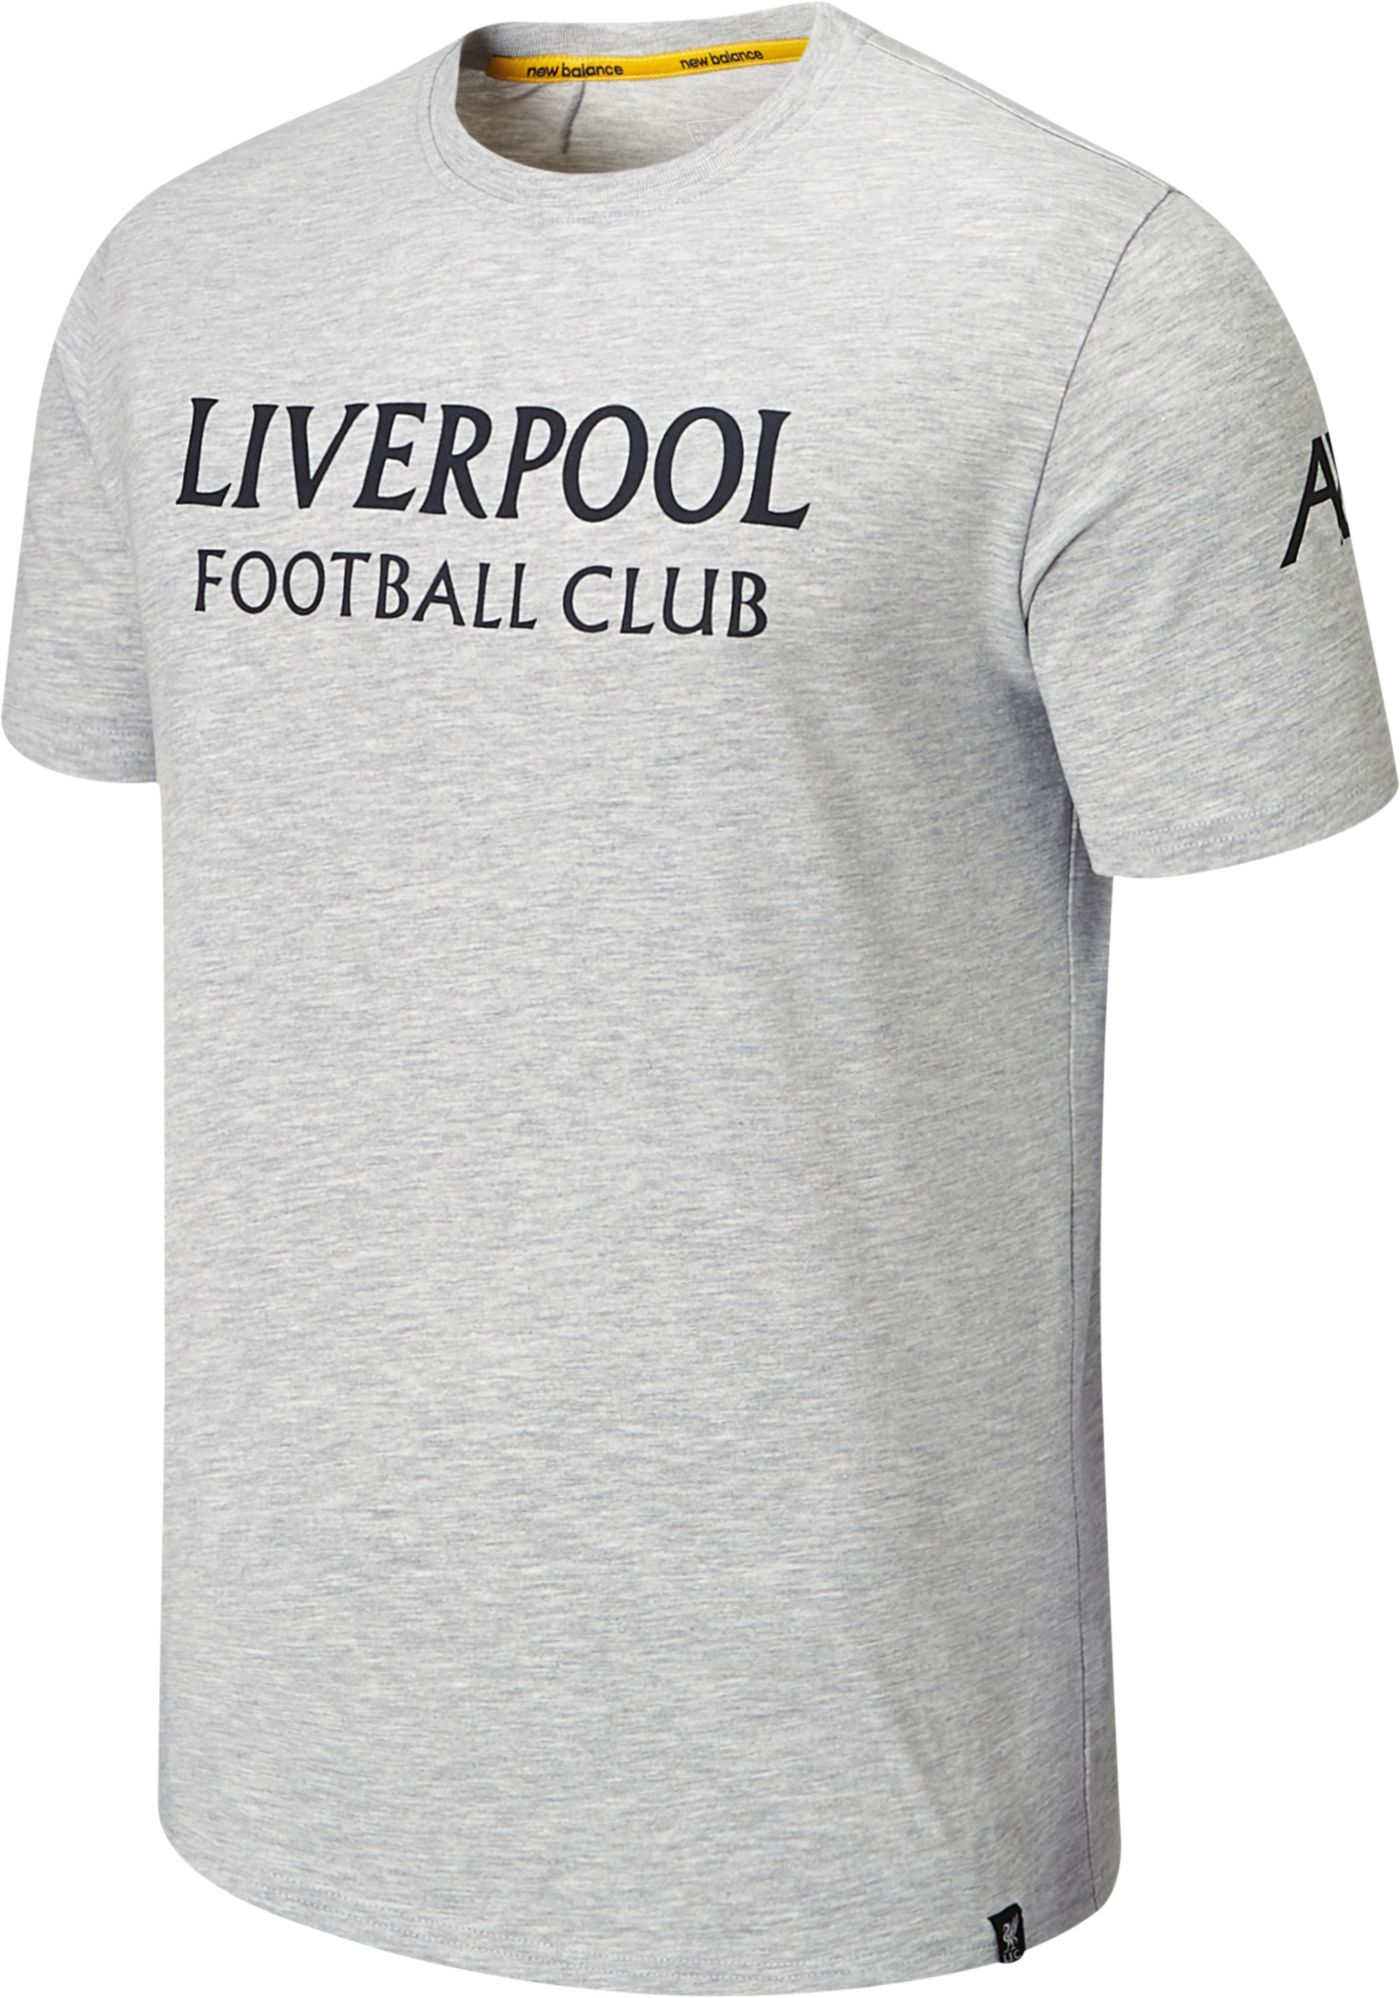 New Balance Youth Liverpool FC Travel Graphic Heather Grey T-Shirt